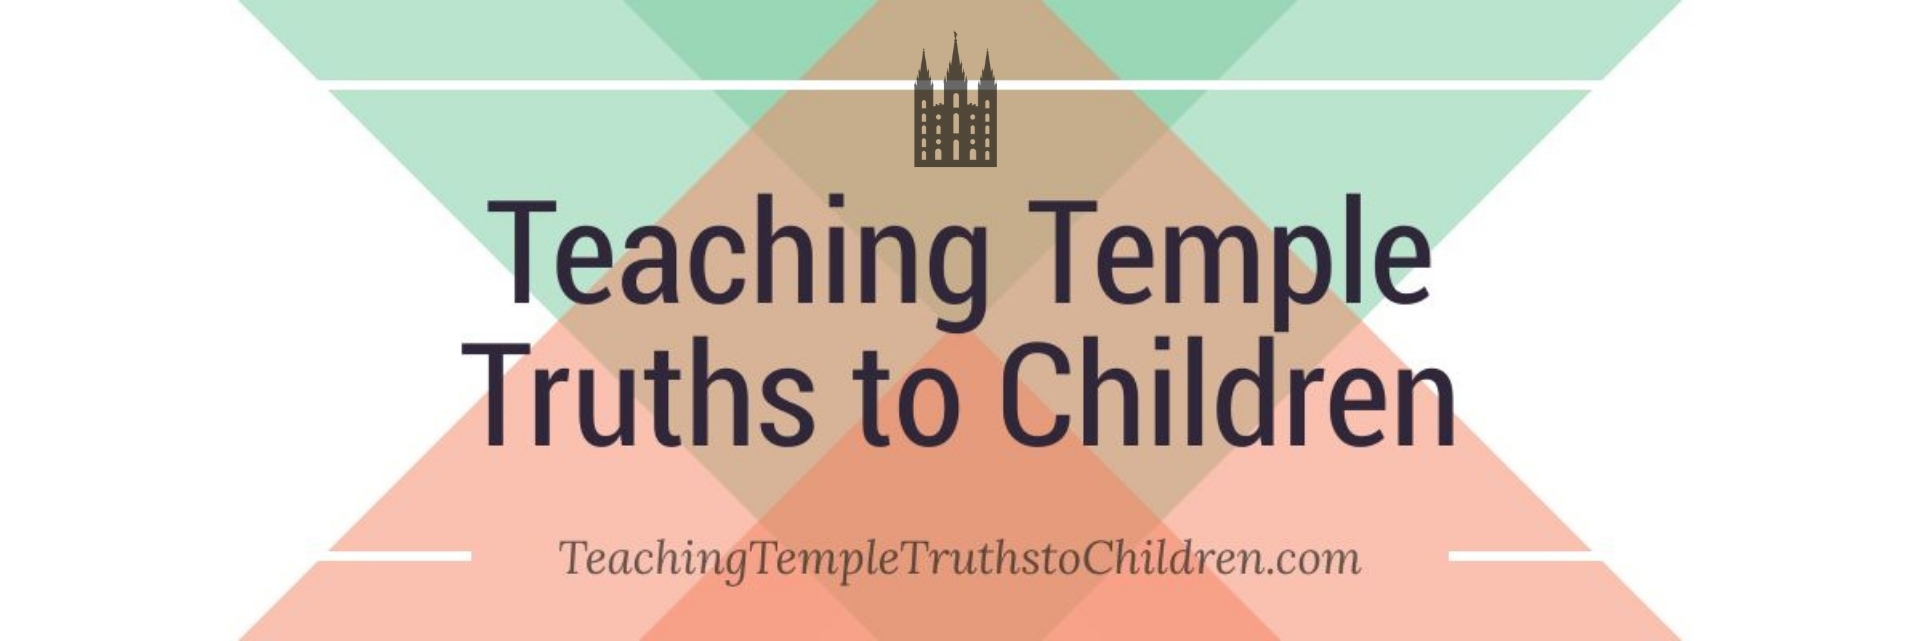 Teaching Temple Truths to Children